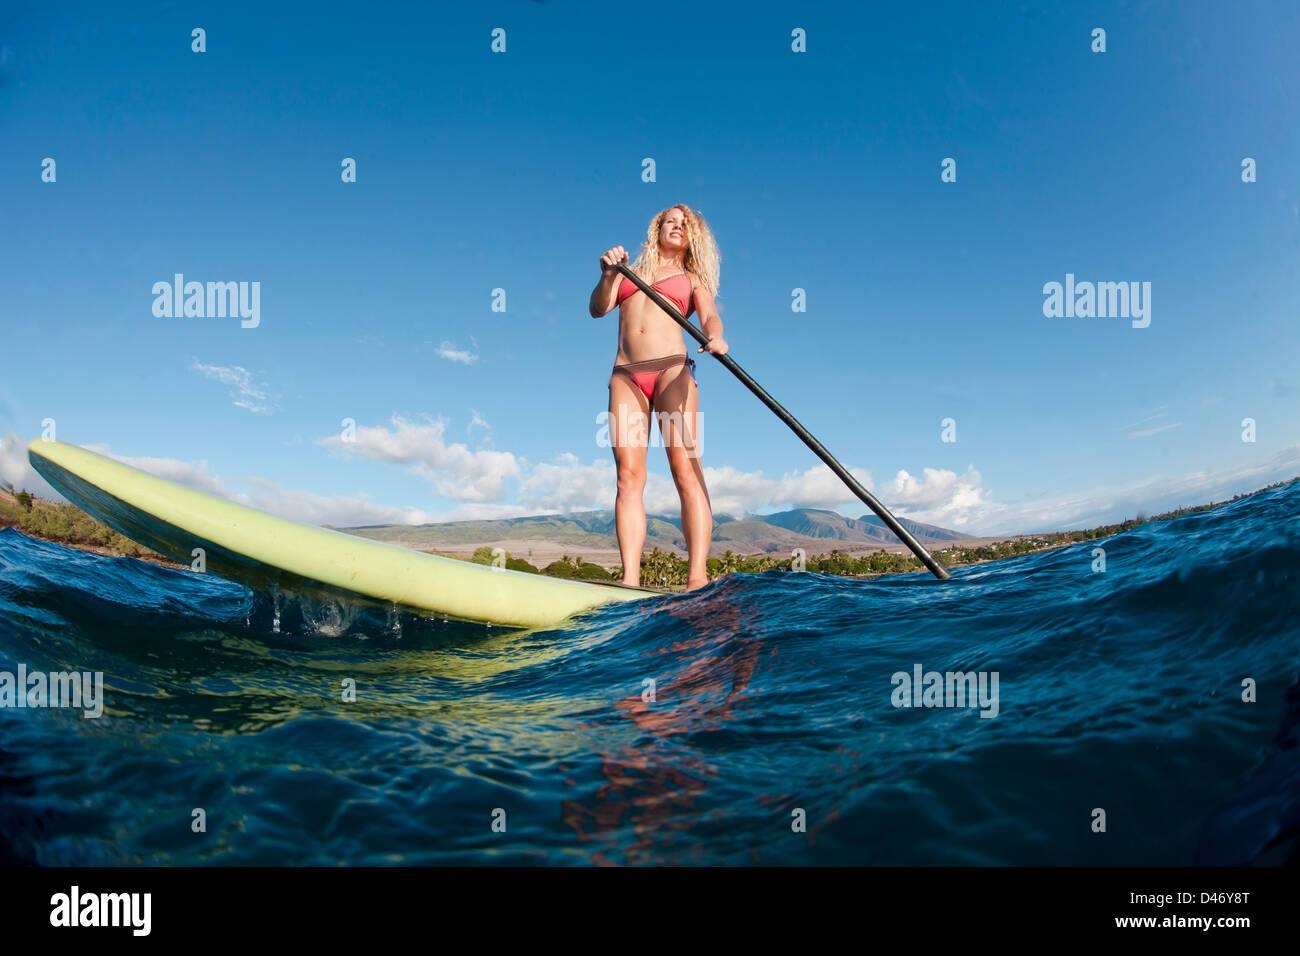 Surf instructor Tara Angioletti on a stand-up paddle board off Canoe Bearch, Maui. Hawaii. - Stock Image